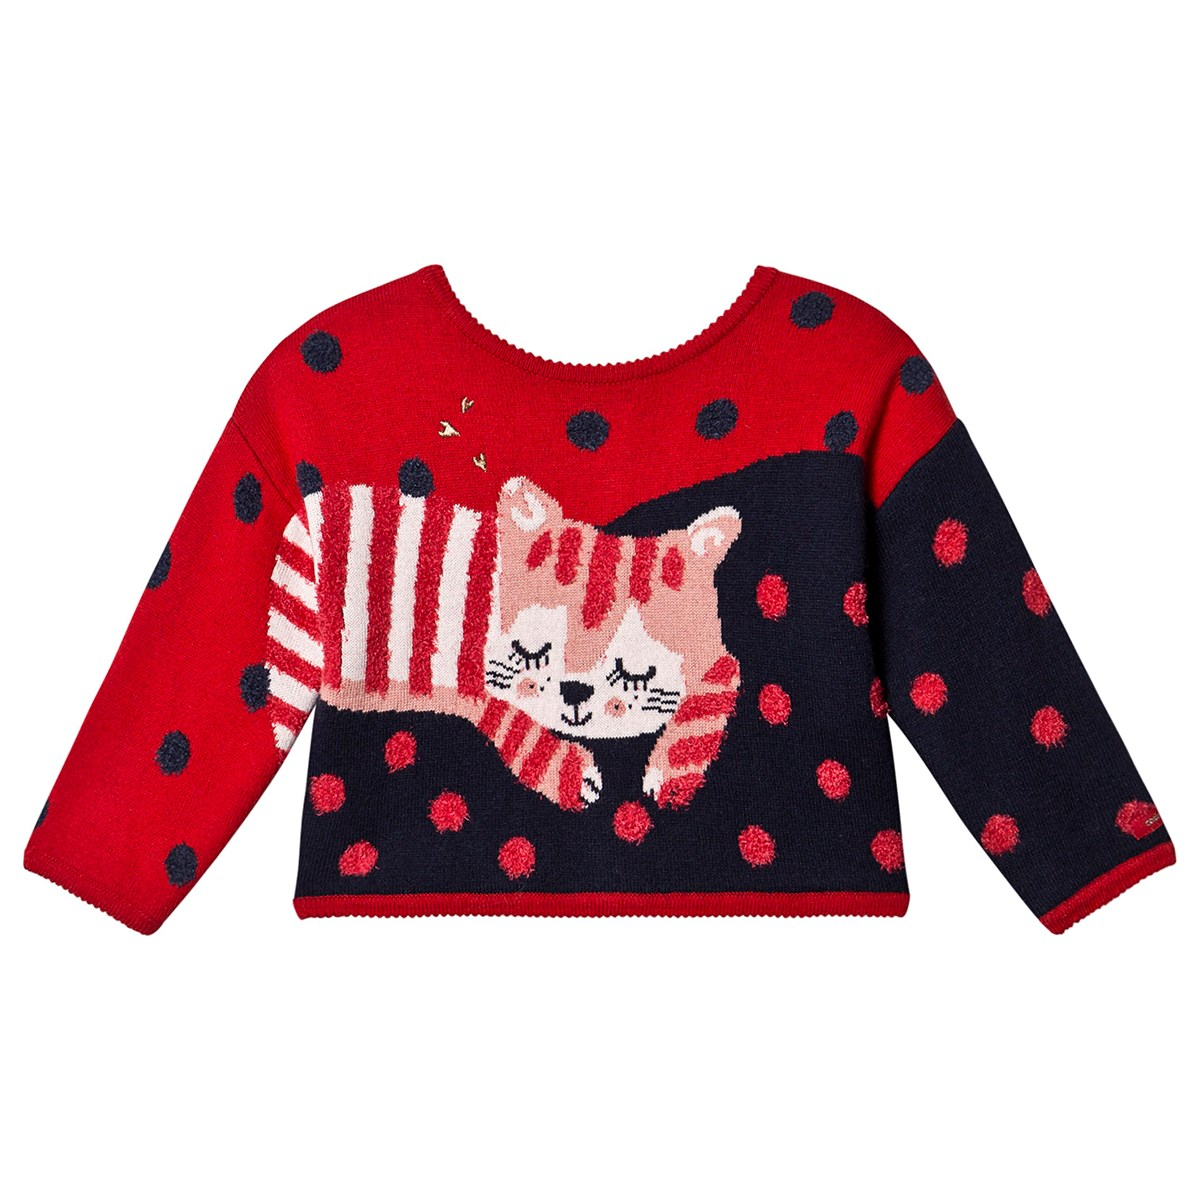 Catimini - 2-in-1 Spot Cat Sweater and Cardigan Red - Babyshop com